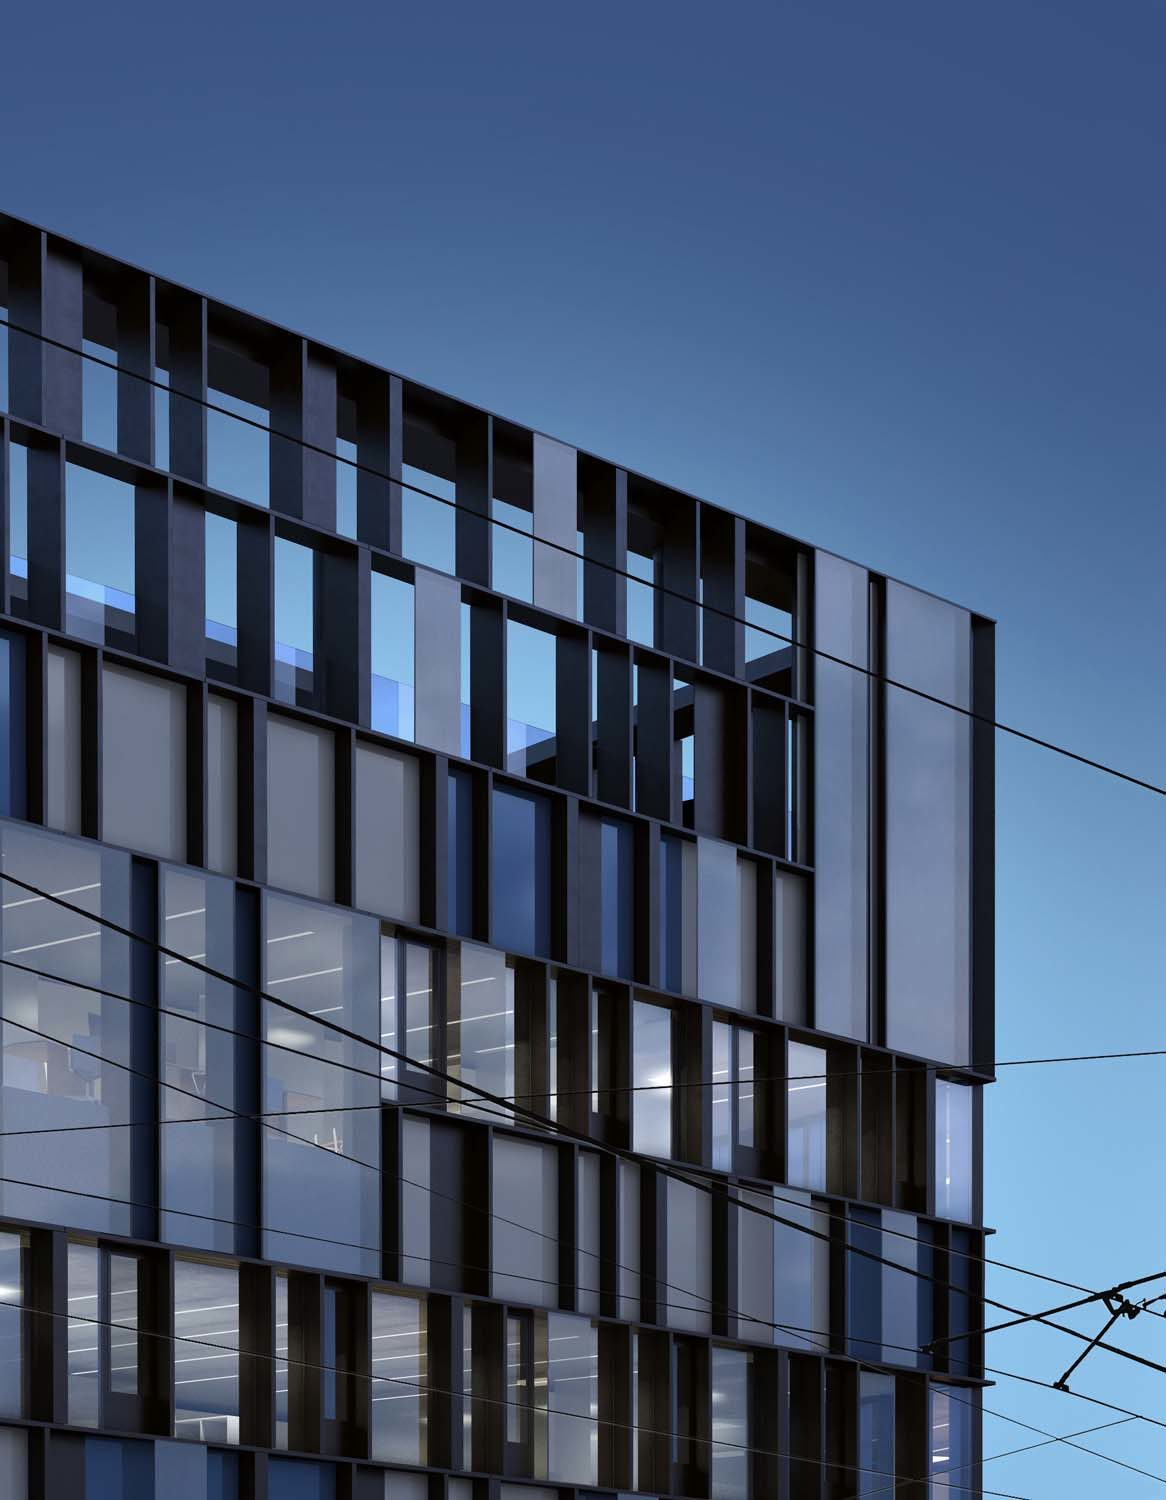 New headquarters Lavazza in Turin – Cza Cino Zucchi Architects, 2014